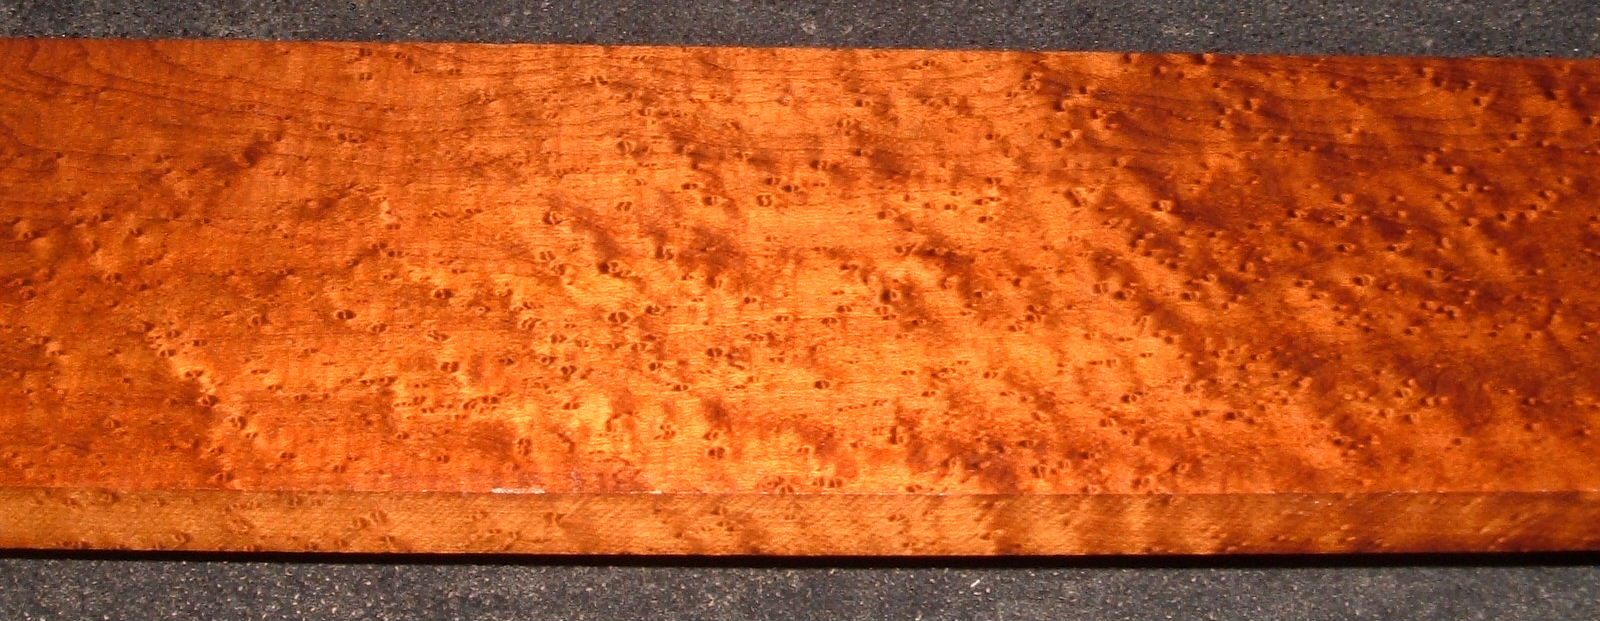 RBM2103-49, 3/4x4x35, Roasted Torrefied Quilted, Birdseye Hard Maple